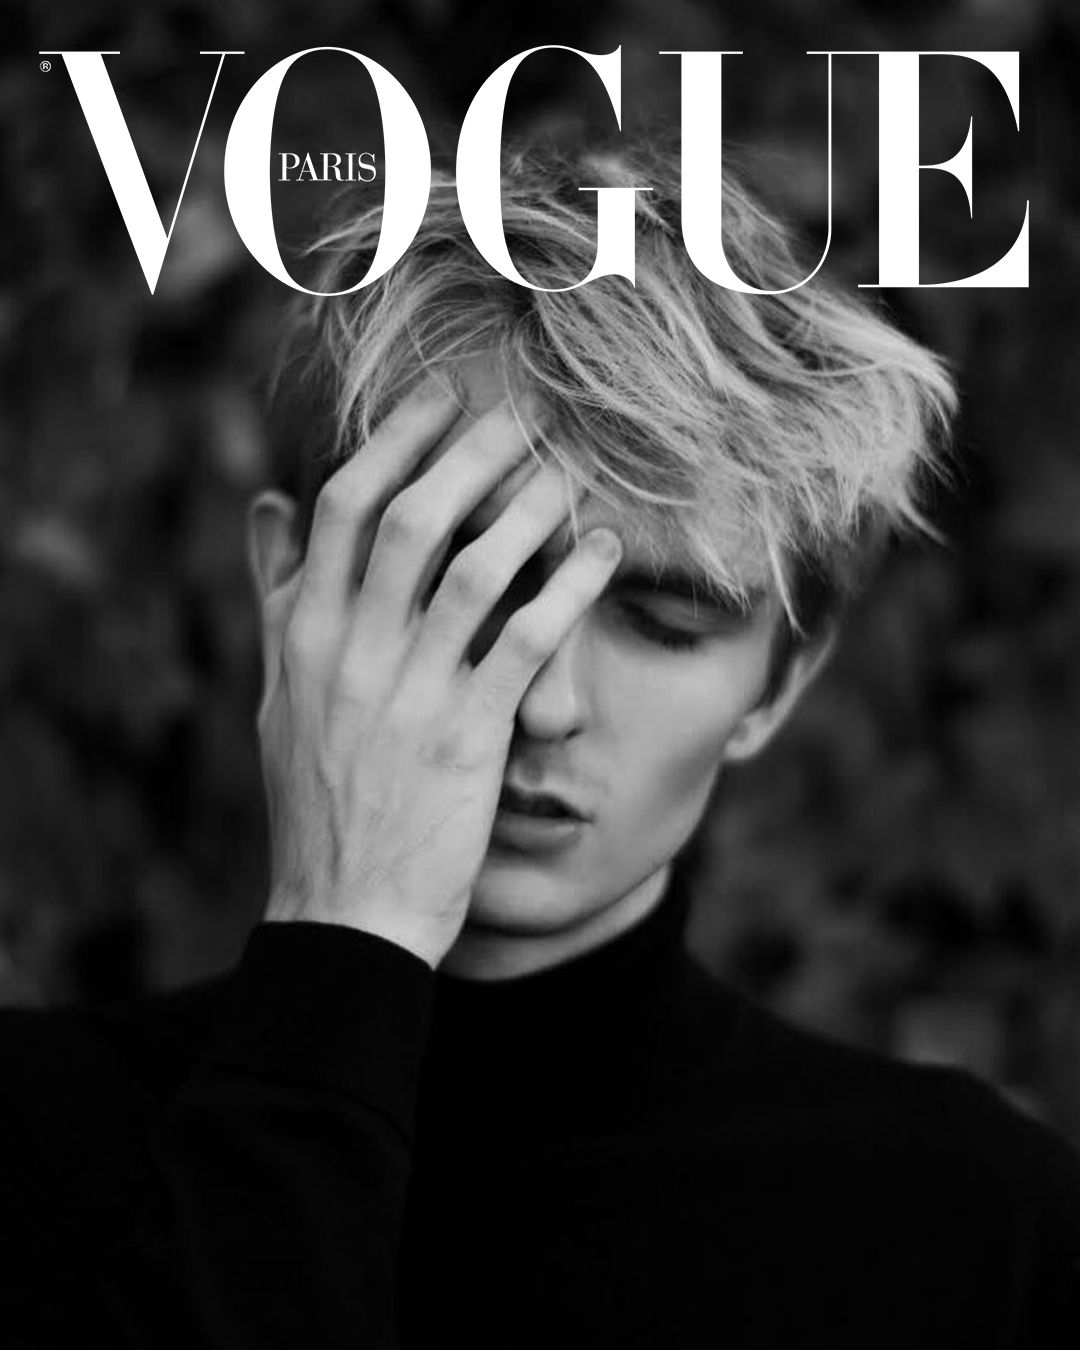 Vogue Challenge By Maurice Style Tik Tok Maurices Style Tiktok Fashion Vogue Covers